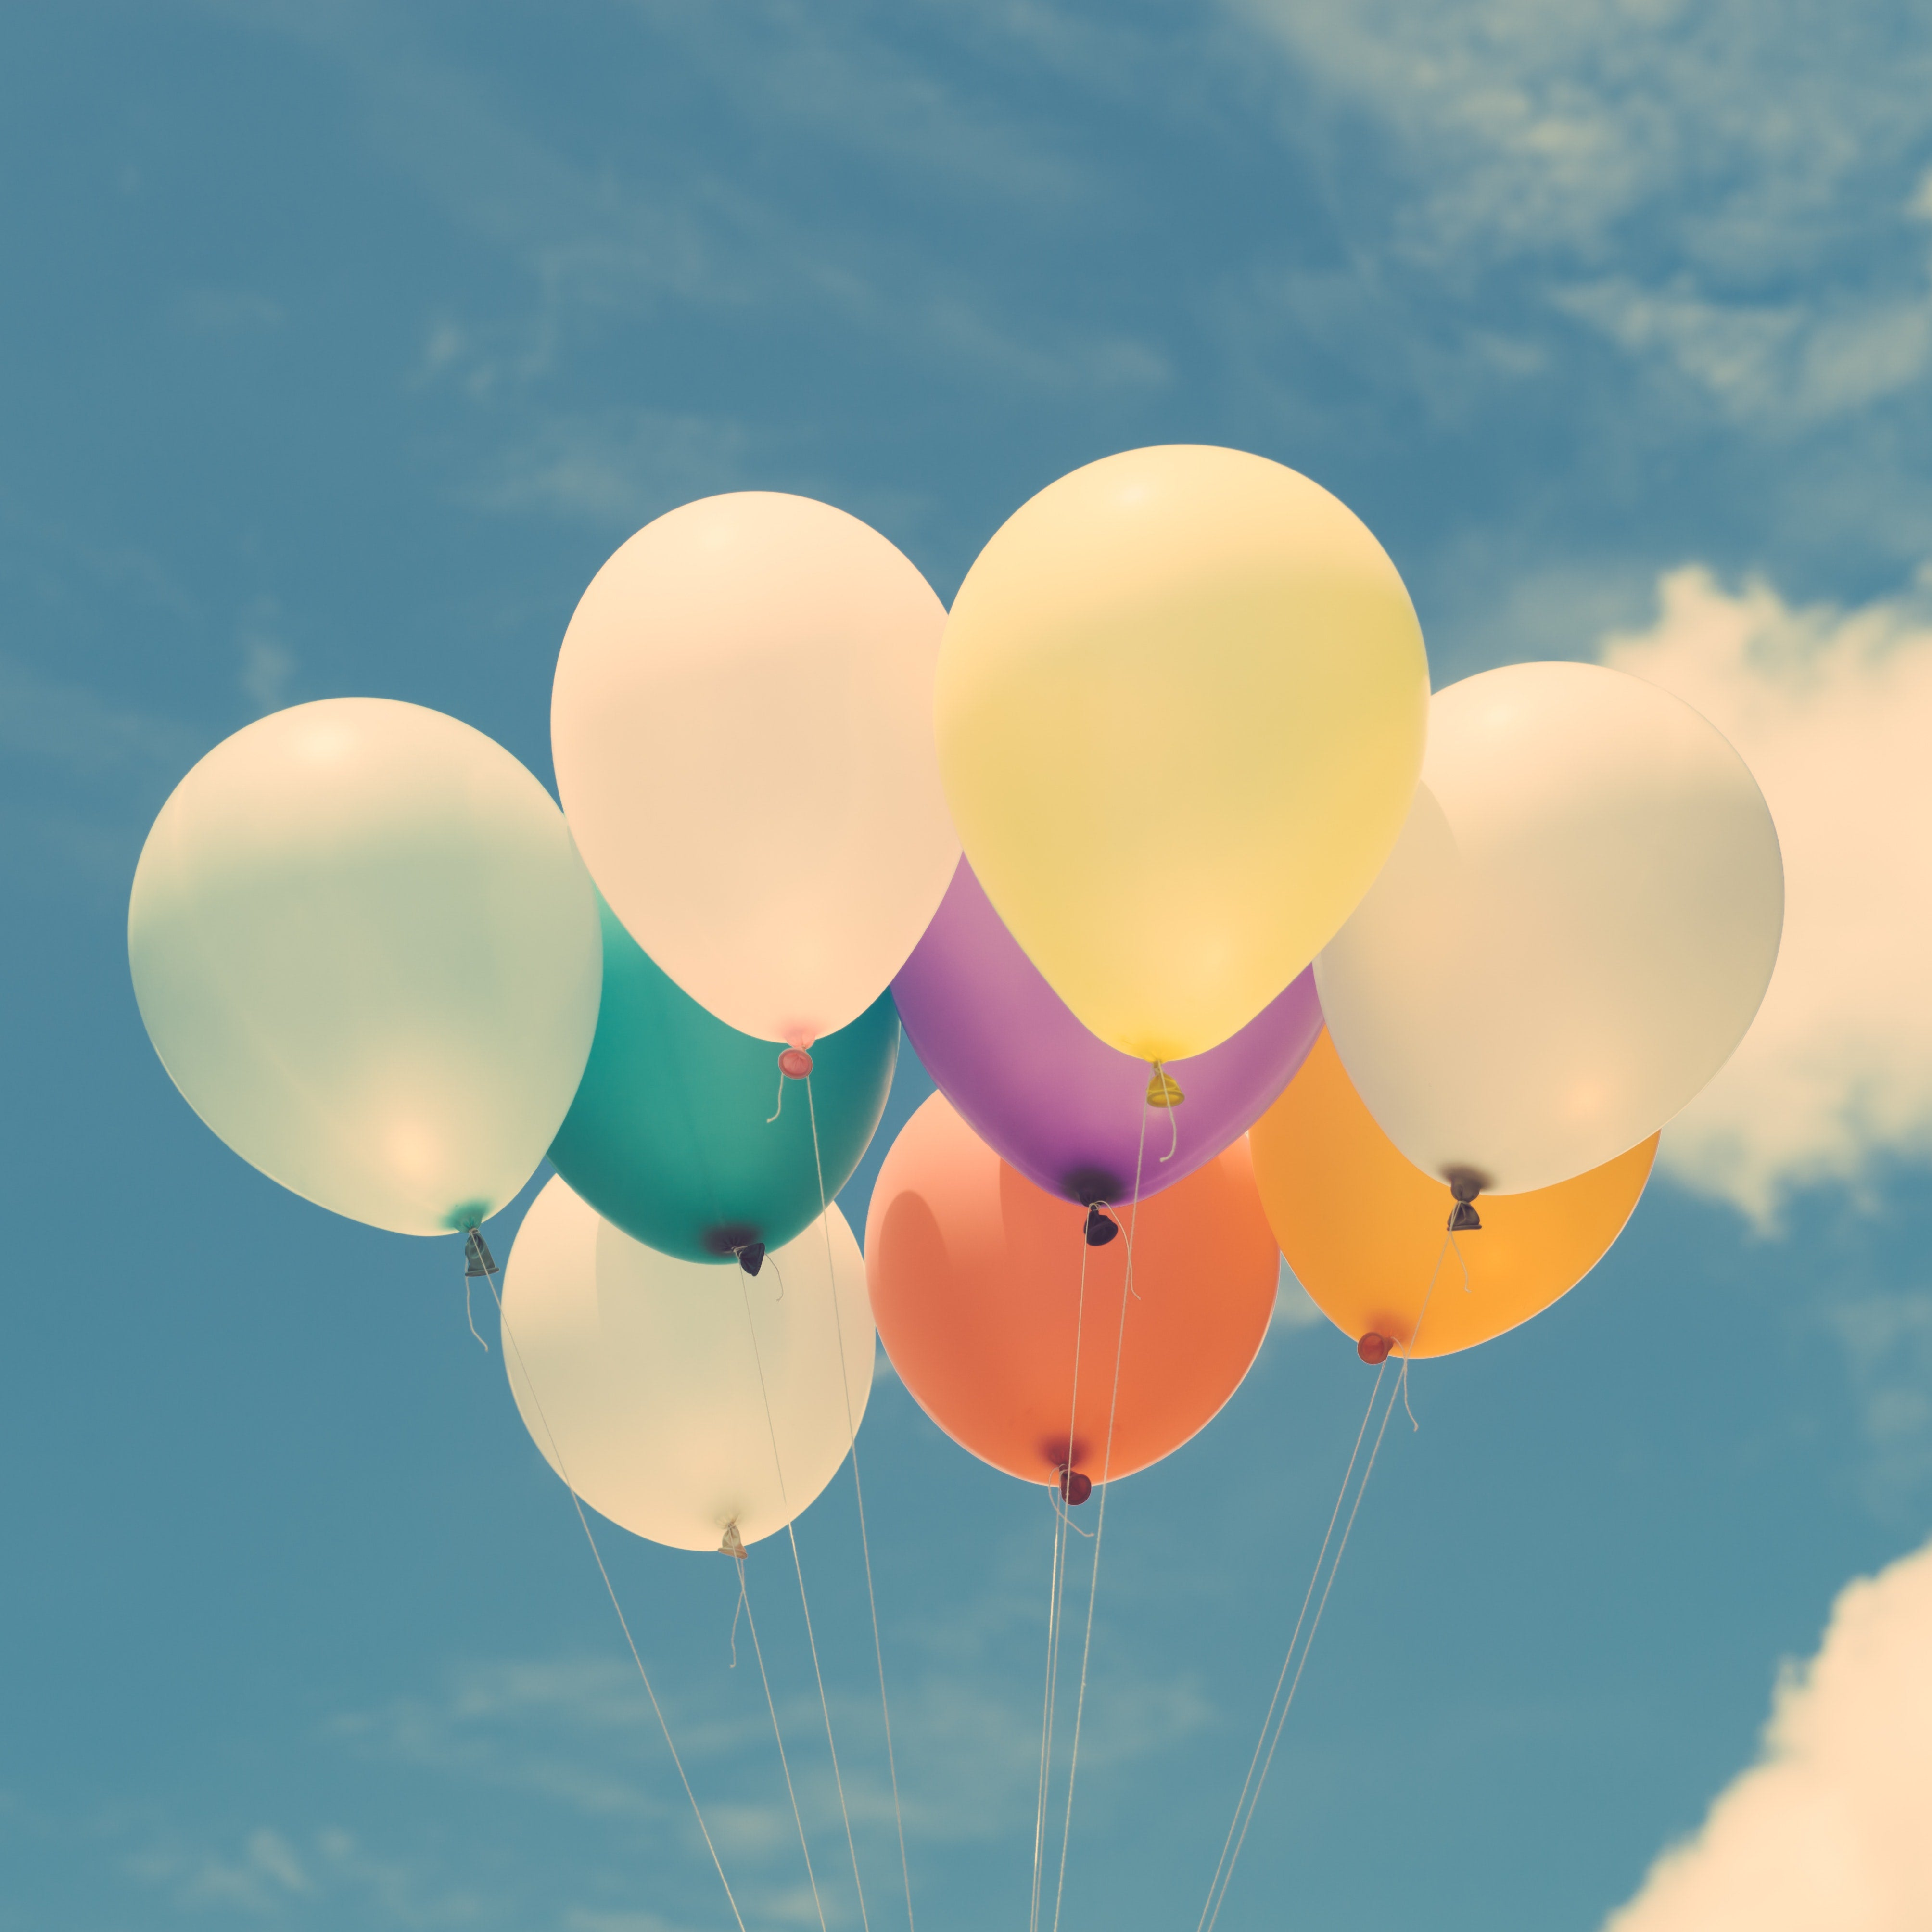 balloons-calm-clouds-574282